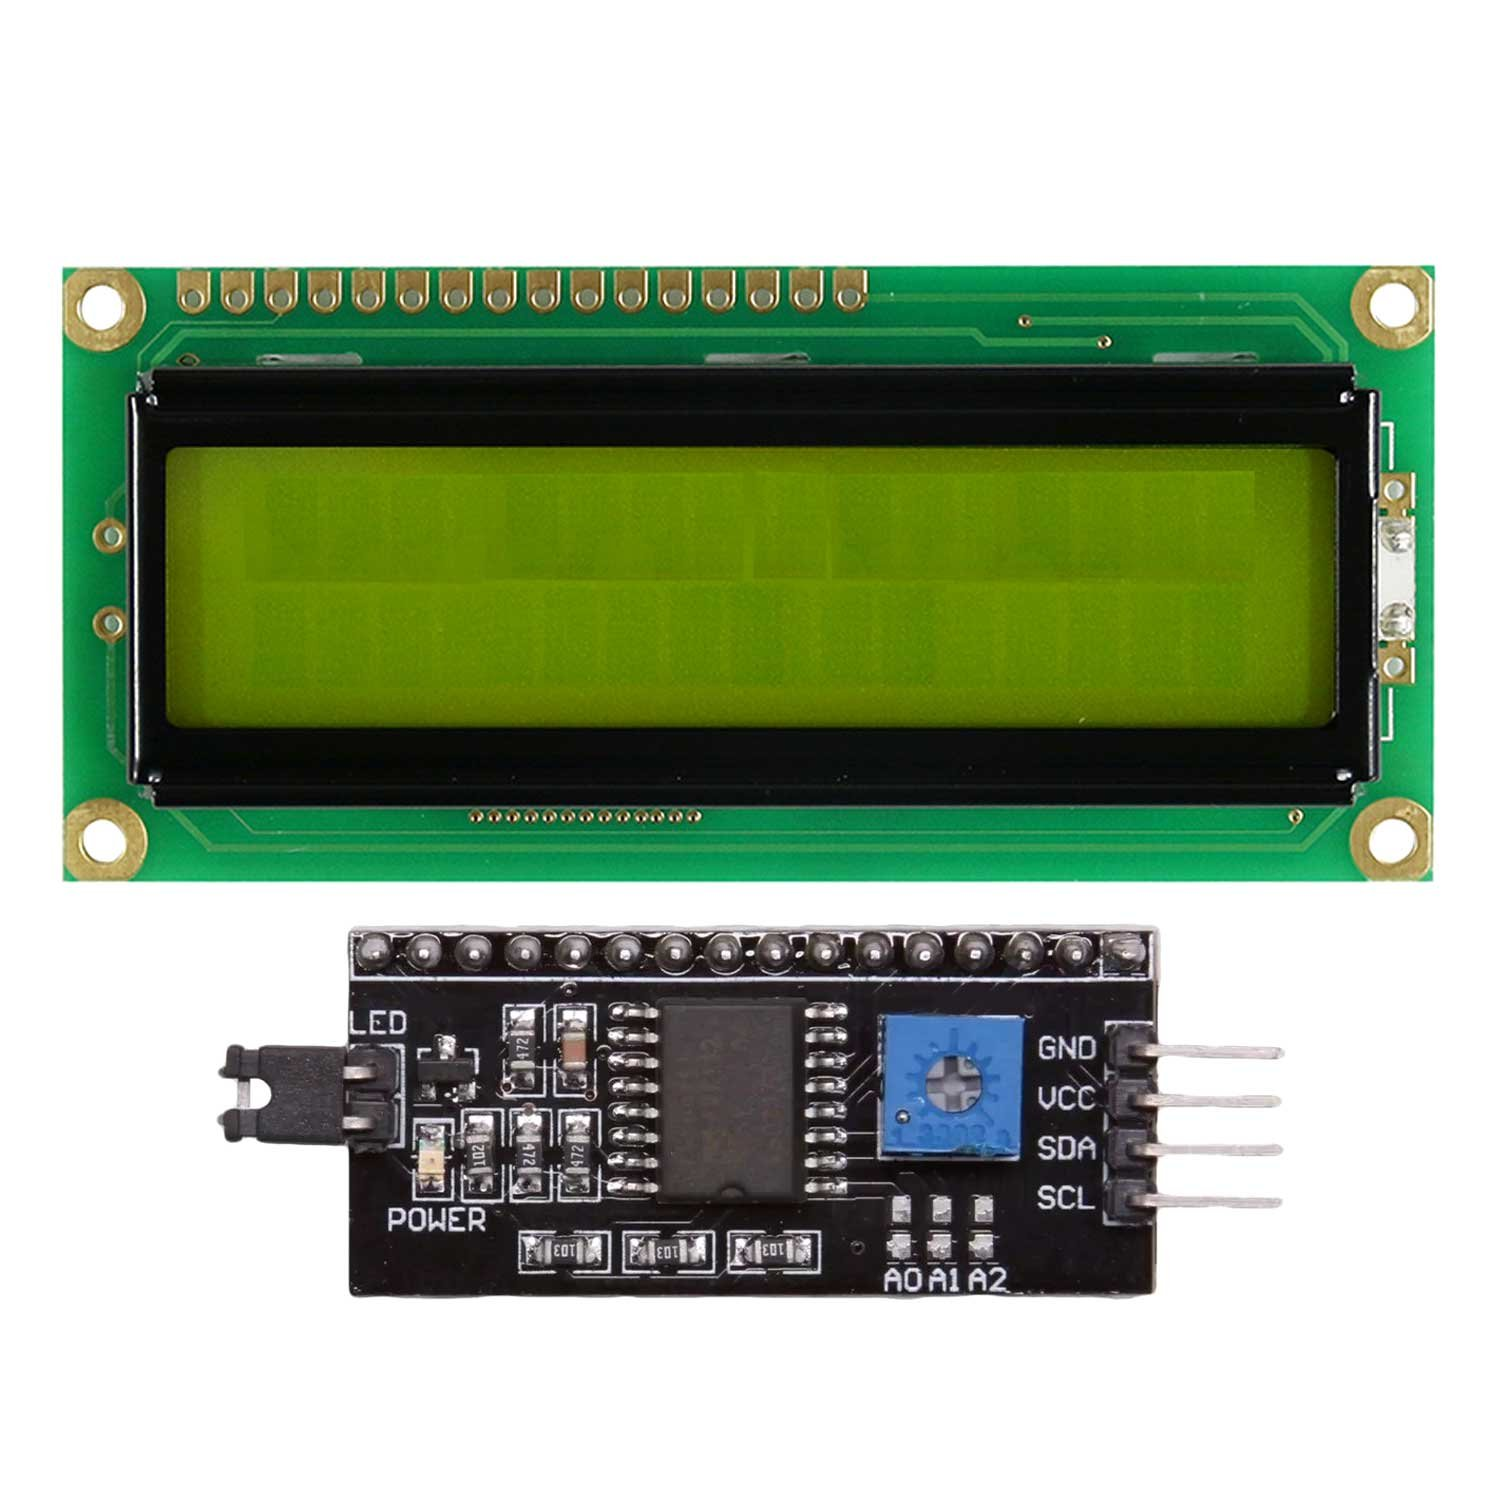 AdraXx LCD1602-1602-16x2-LCD-Display-with-IIC-I2C-Serial-Interface-Adapter-Module for Arduino: Amazon.in: Industrial & Scientific